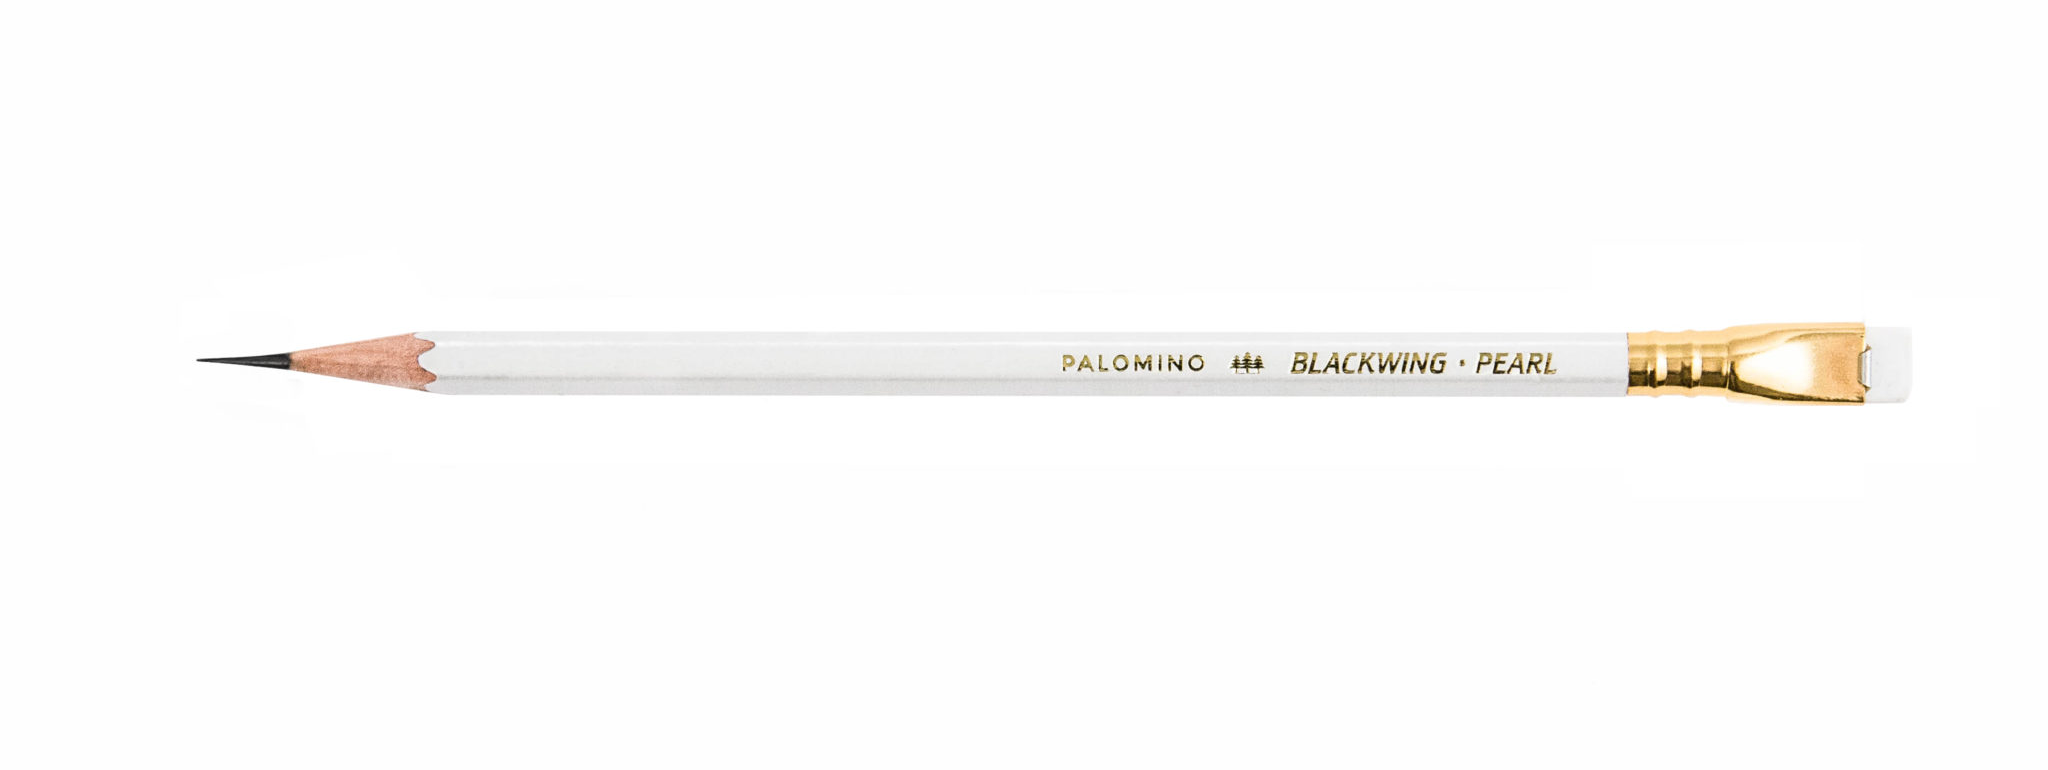 Blackwing Pearl (1).pngTHE BLACKWING PENCIL: M.LOVEWELL BLOG